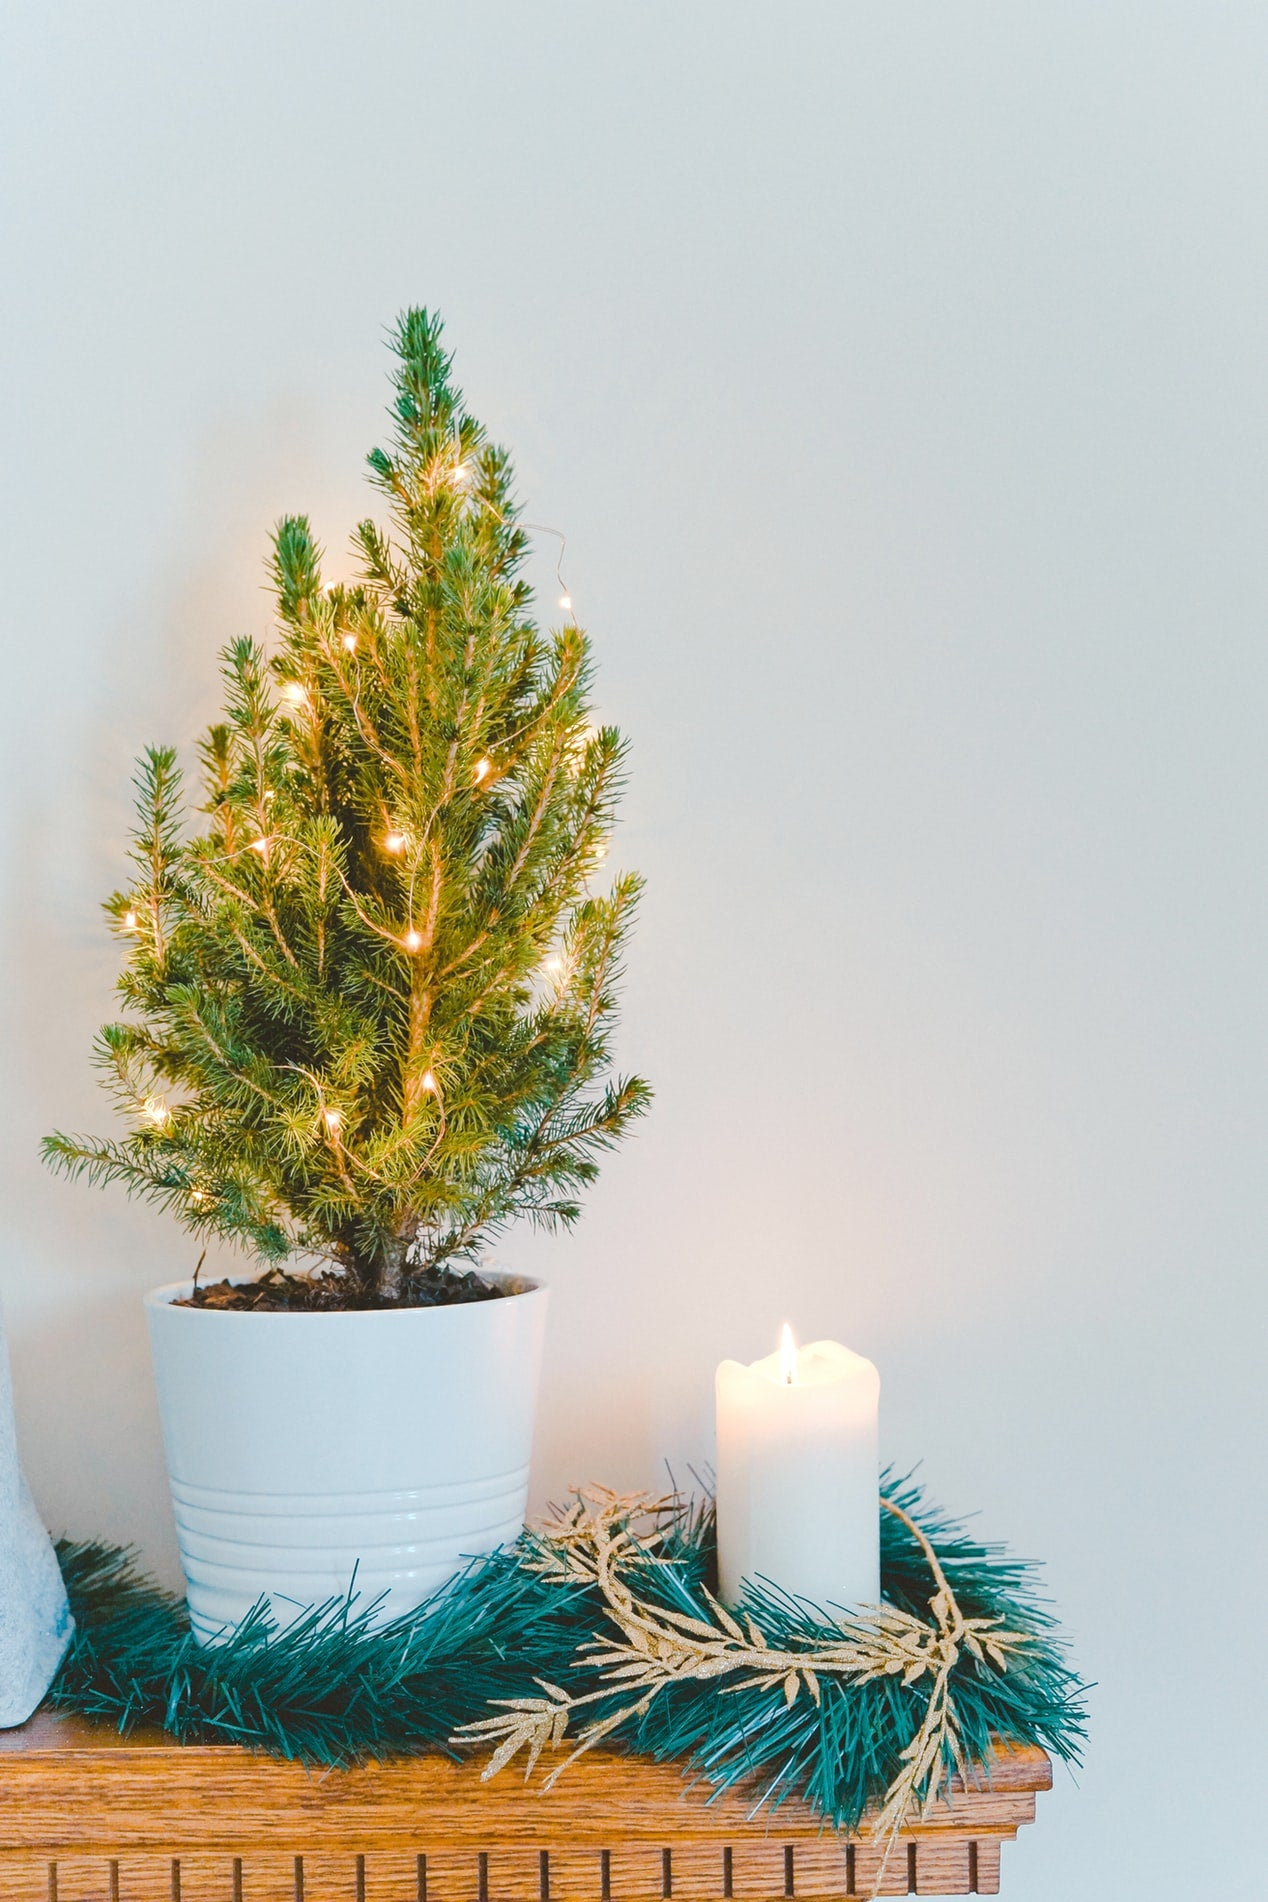 A small Christmas tree and candle create a festive atmosphere on the mantle when getting your home ready for the holidays.